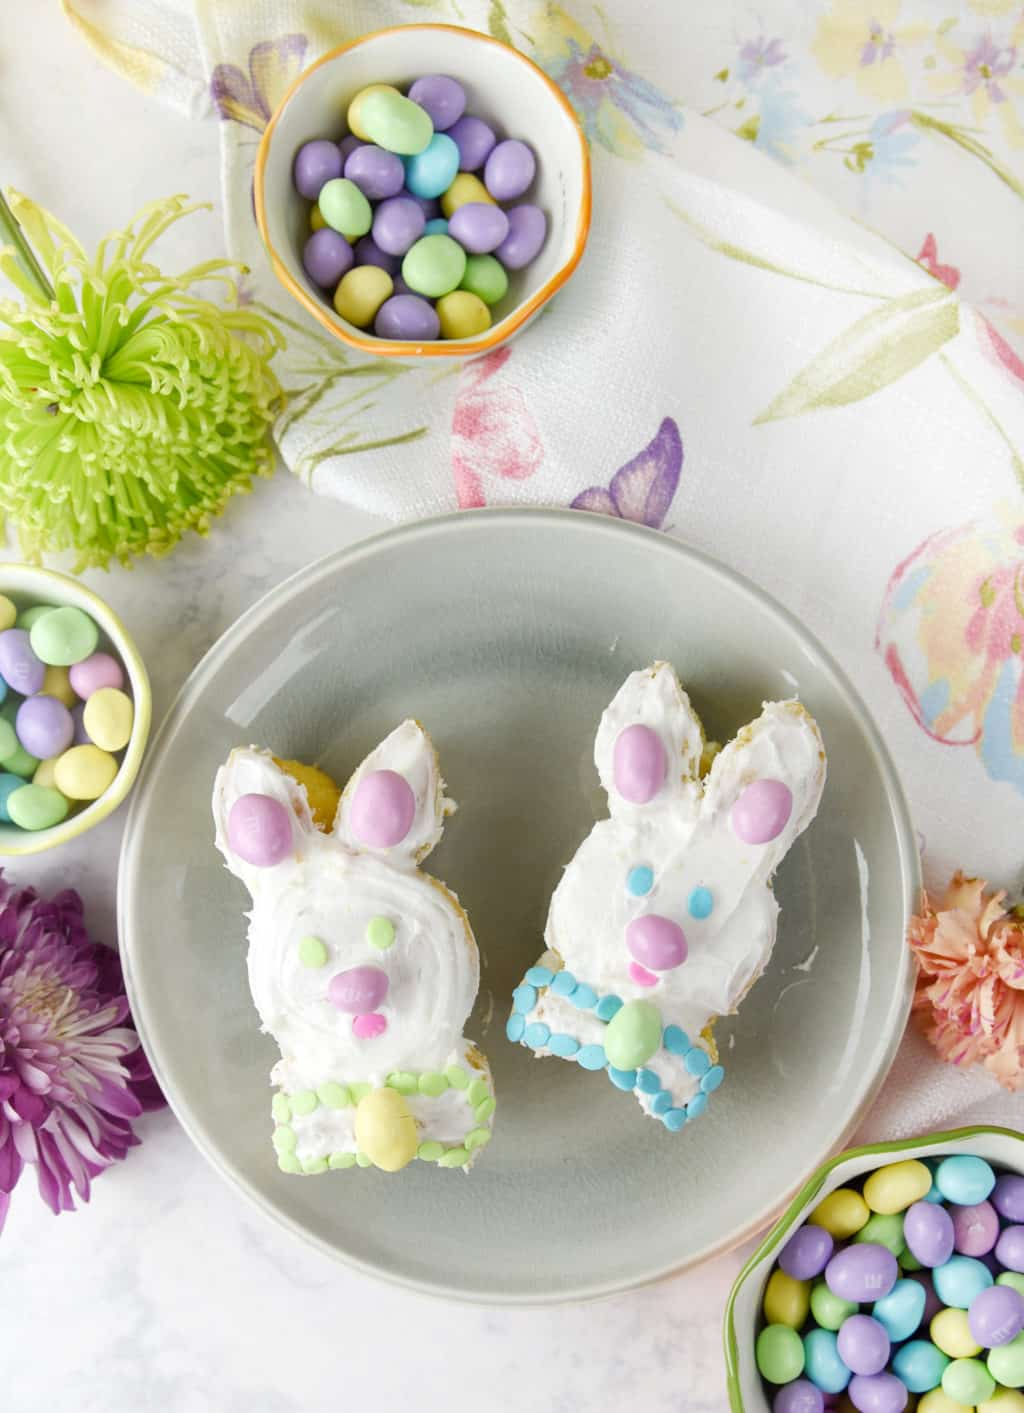 Bunny Mini Cakes made from Cupcakes! Such a fun and easy recipe idea!